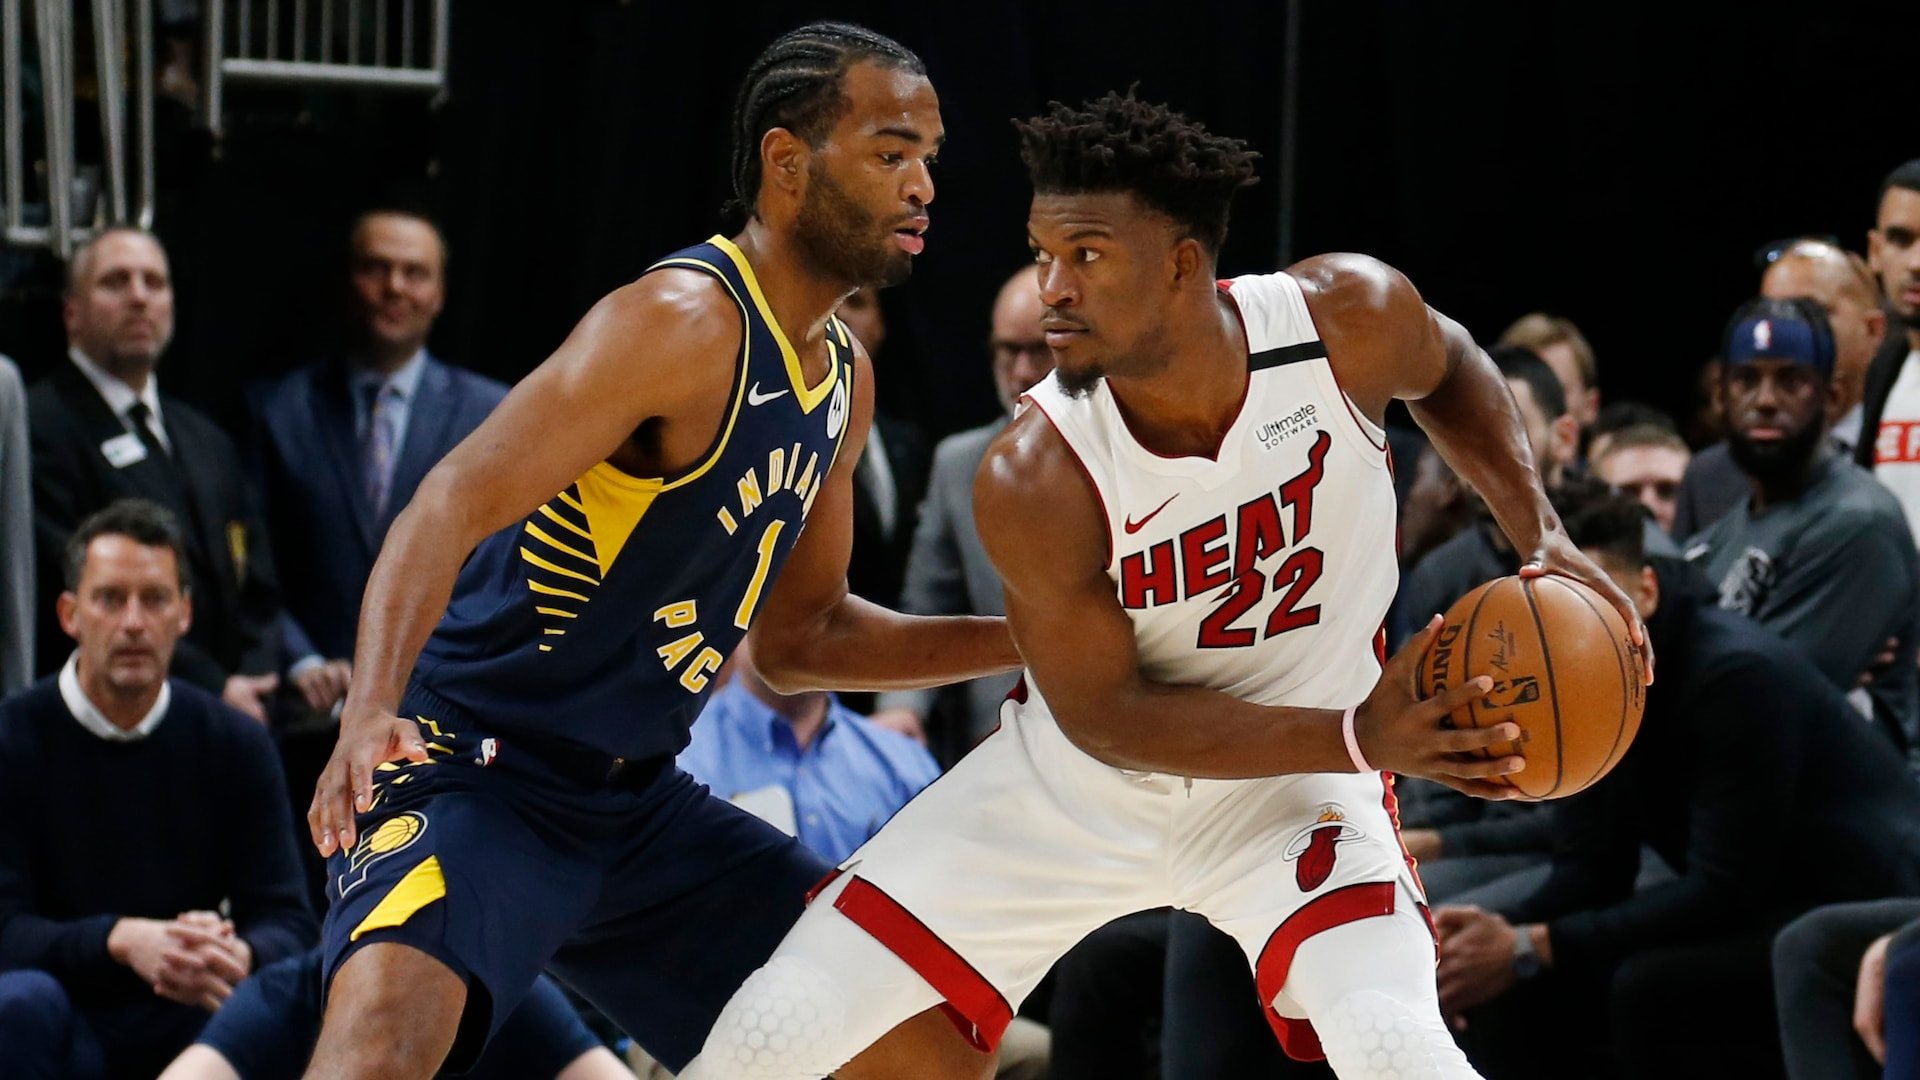 After longer-than-usual wait, rematch looms for Pacers and Heat